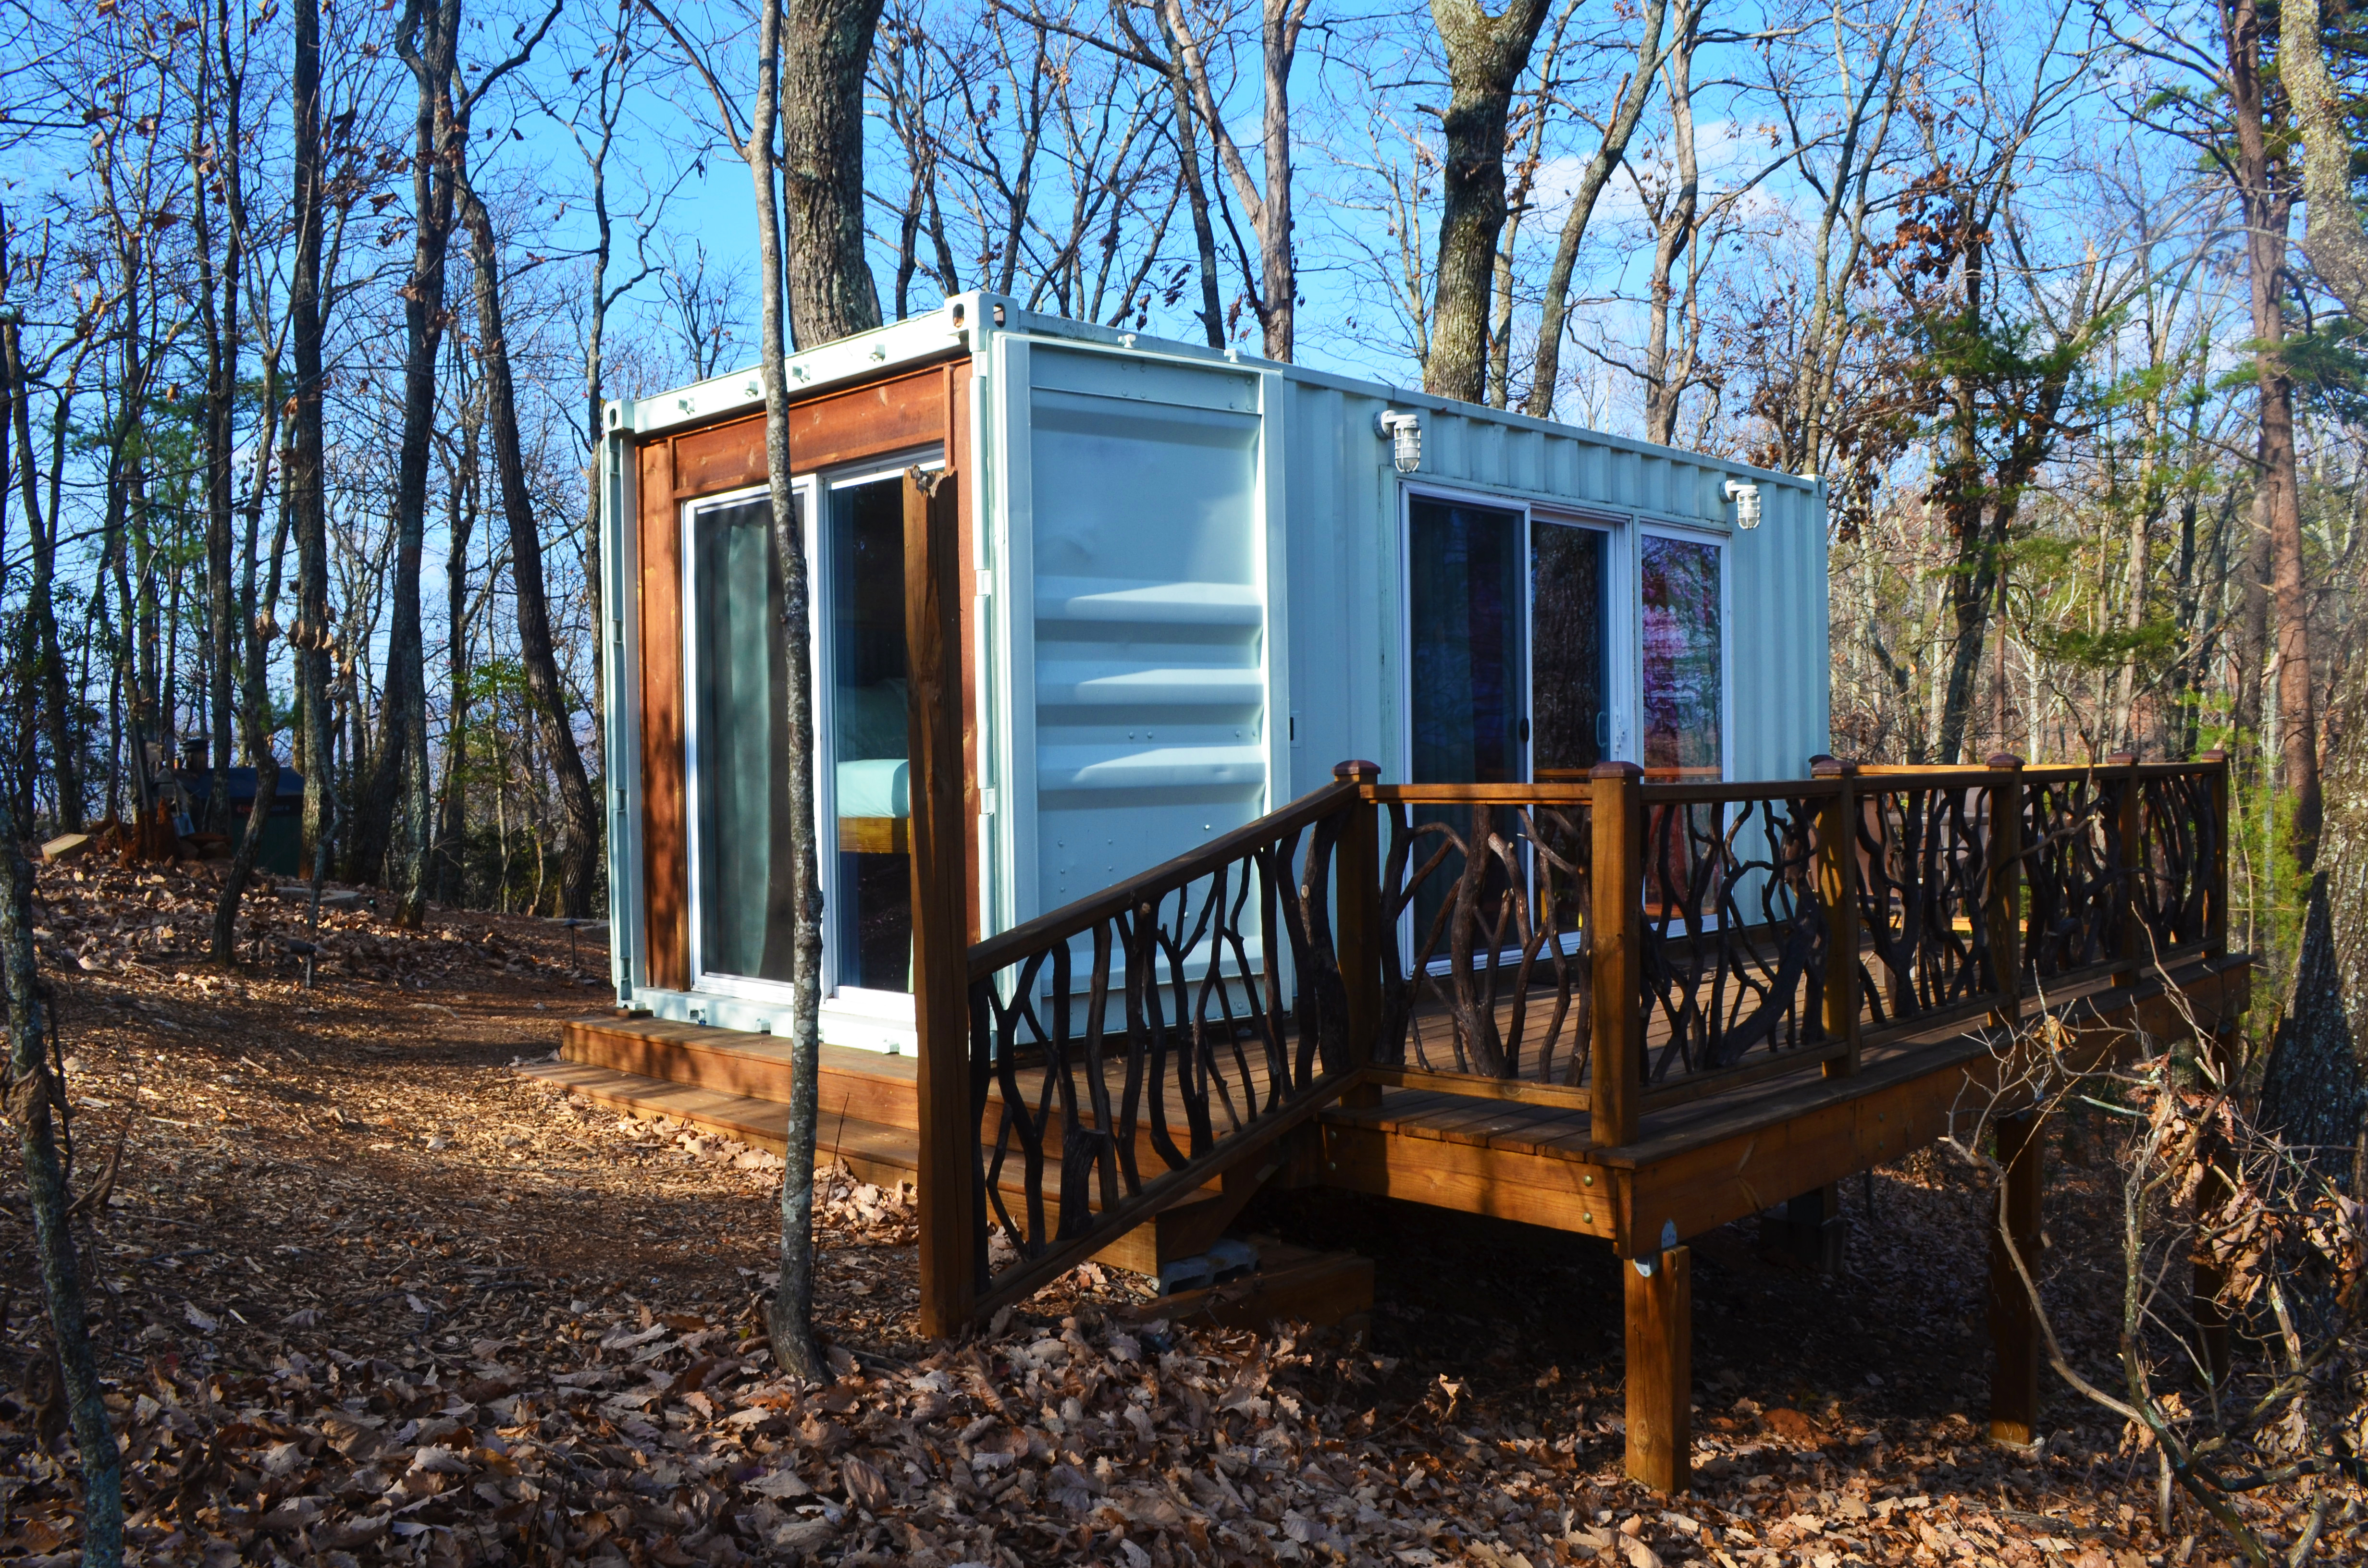 hotels dahlonega barefoot hotel with porch hills cabins accommodations previousnext eco in ga